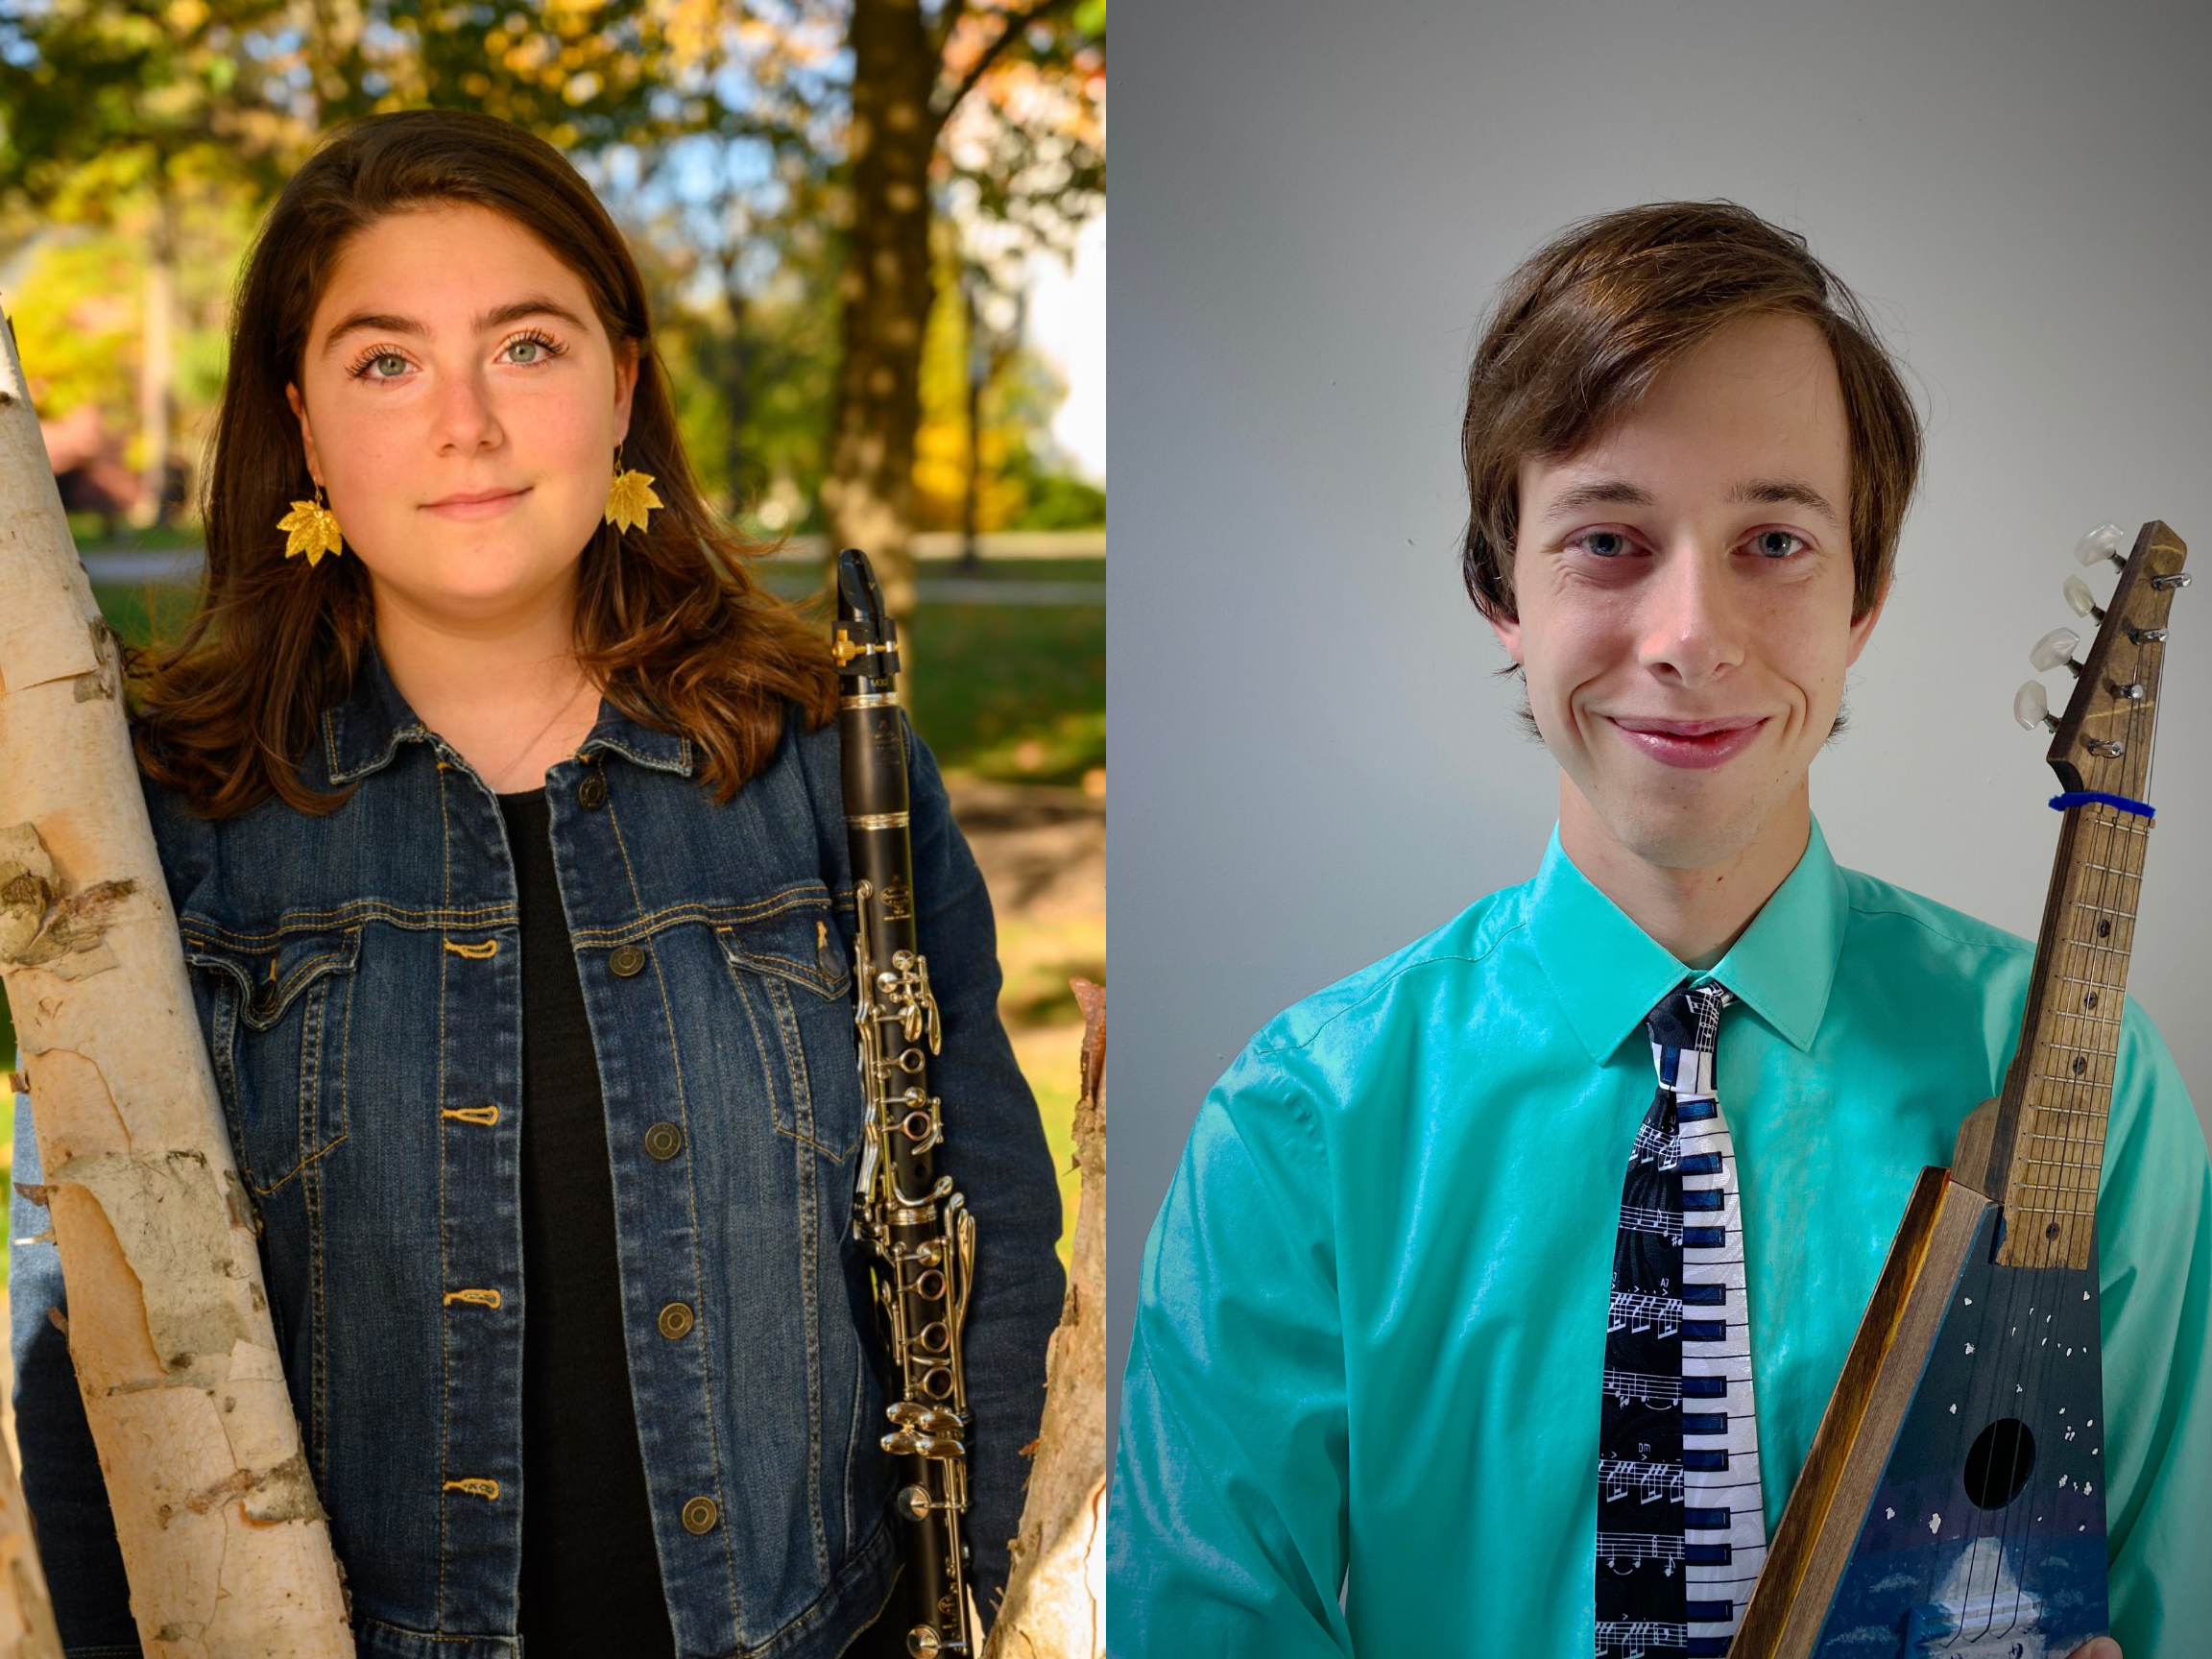 Gettysburg alumni Brooke Maskin '20 (left) and Ben Fruchtl '20 (right) are first-time music educators during the COVID-19 pandemic.